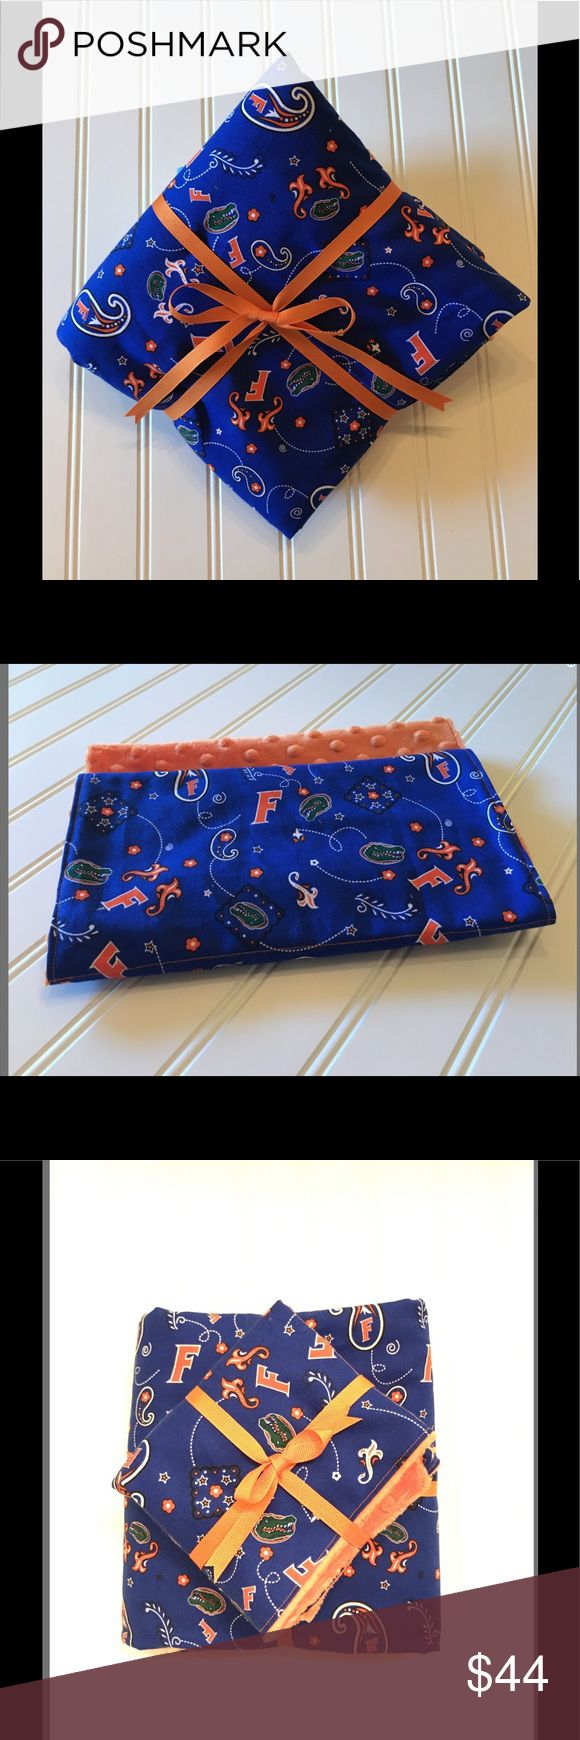 Baby Blanket, stroller blanket, baby girl,baby boy This blanket the perfect baby shower gift for the new baby in your life! The blanket is soft and cuddly with a minky dot back. The front is Florida Gator print blue/orange and back orange minky dot. Great for the car seat, stroller, tummy time or cuddling!  Matching burp cloths✅  Love the University of Florida colors? I'm happy to create something custom.  If your item is a gift, please let me know and I'll include your personalized message…